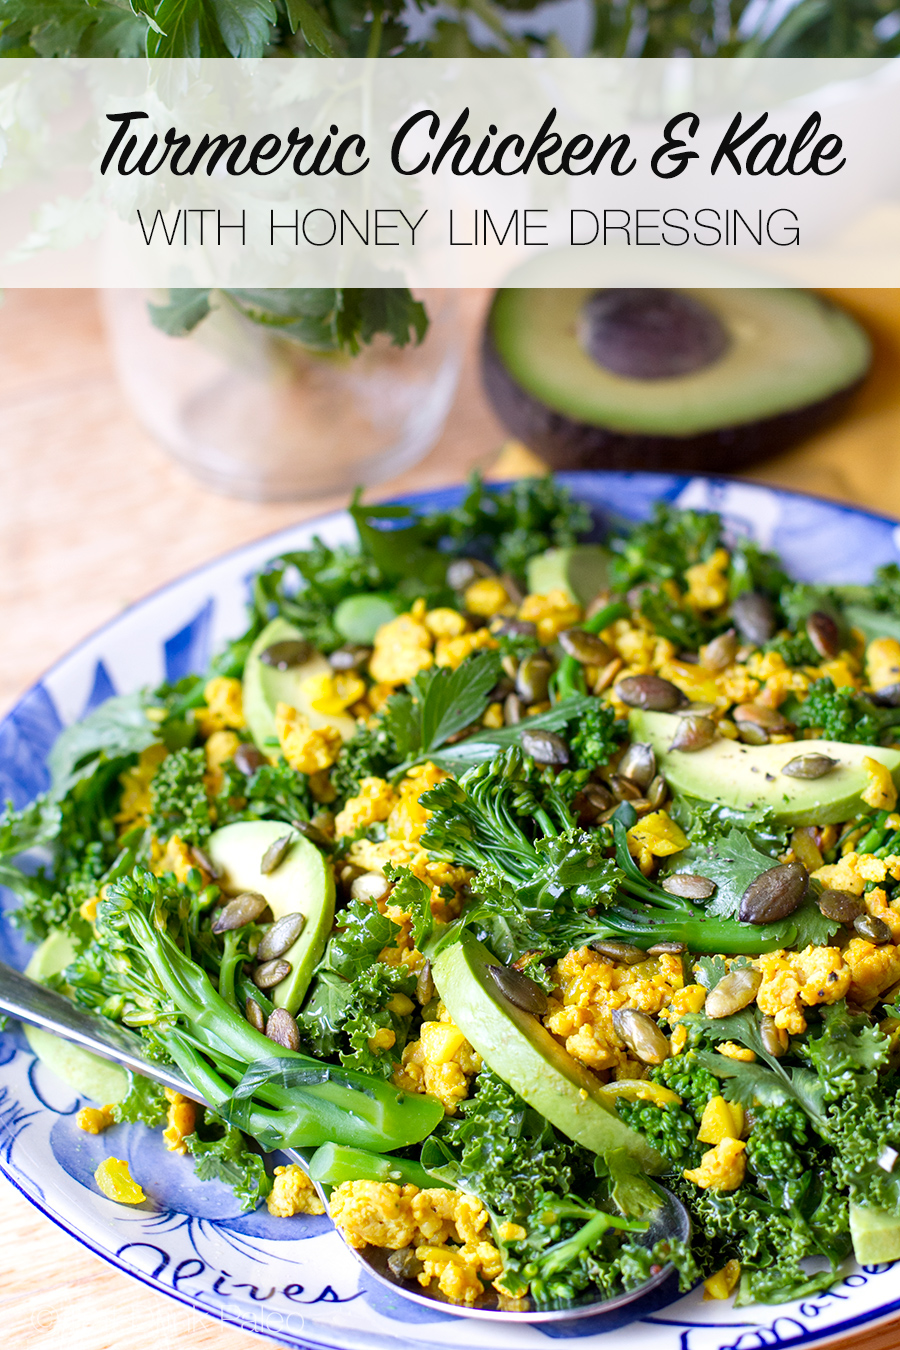 Turmeric Chicken & Kale Salad with Honey Lime Dressing - Paleo, Gluten Free, Low Carb, Whole30 and Clean Eating Friendly.